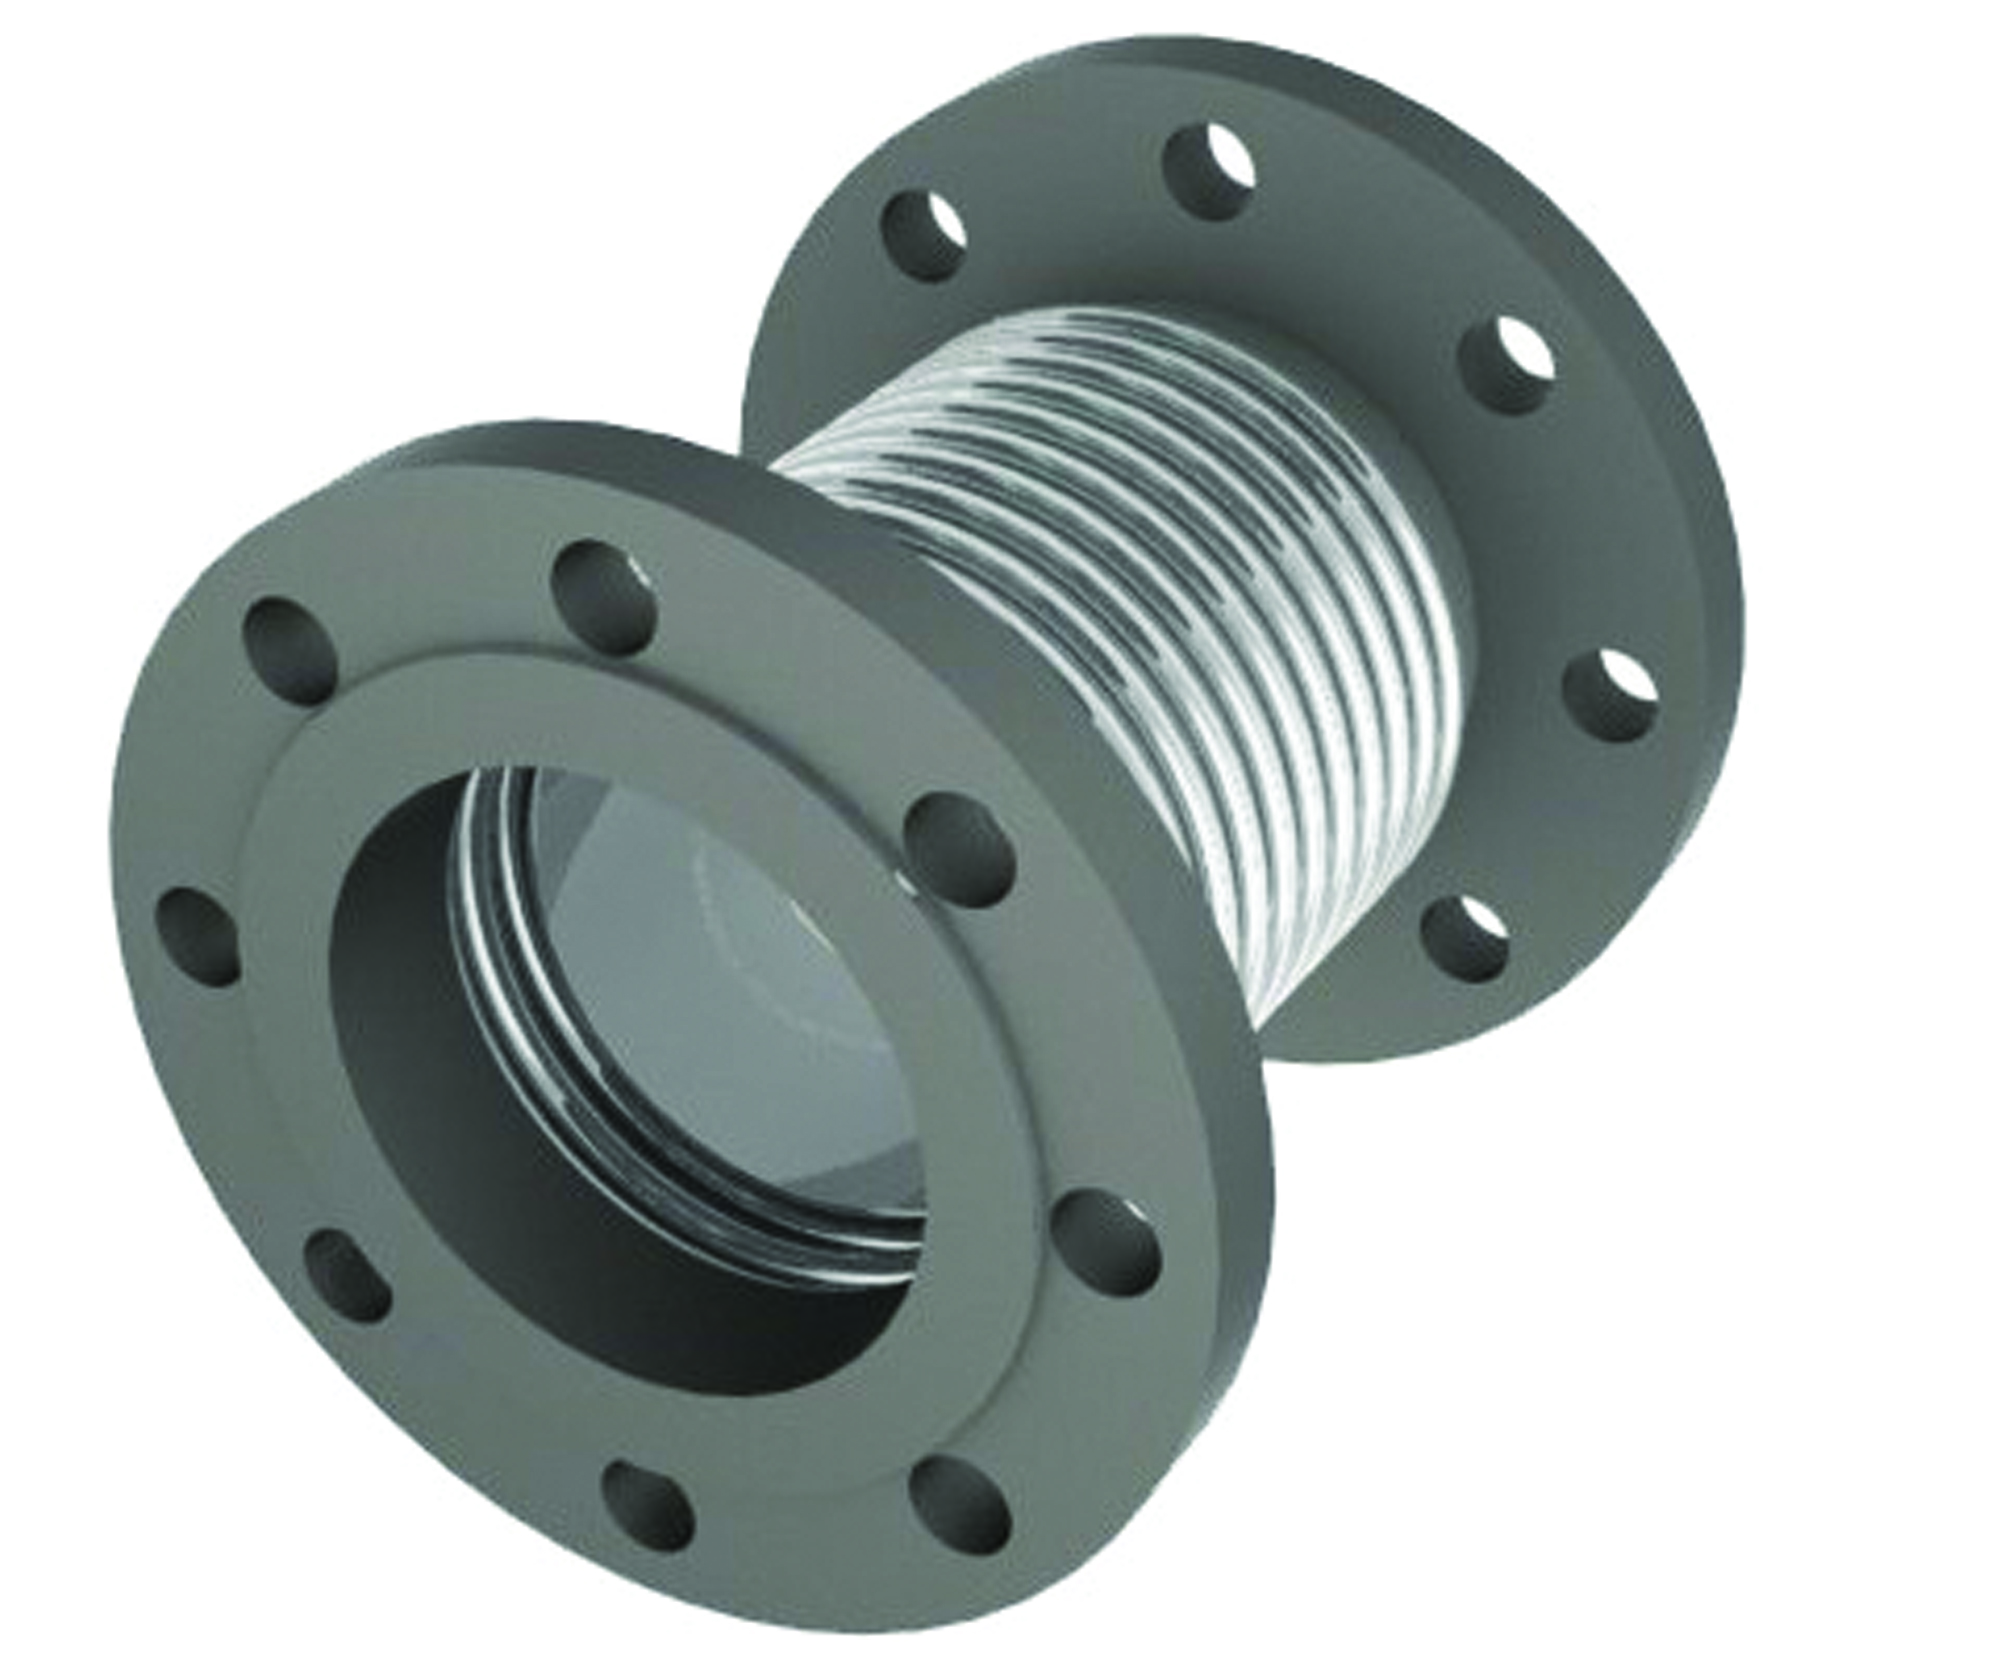 AX1 Flanged Axial Bellow